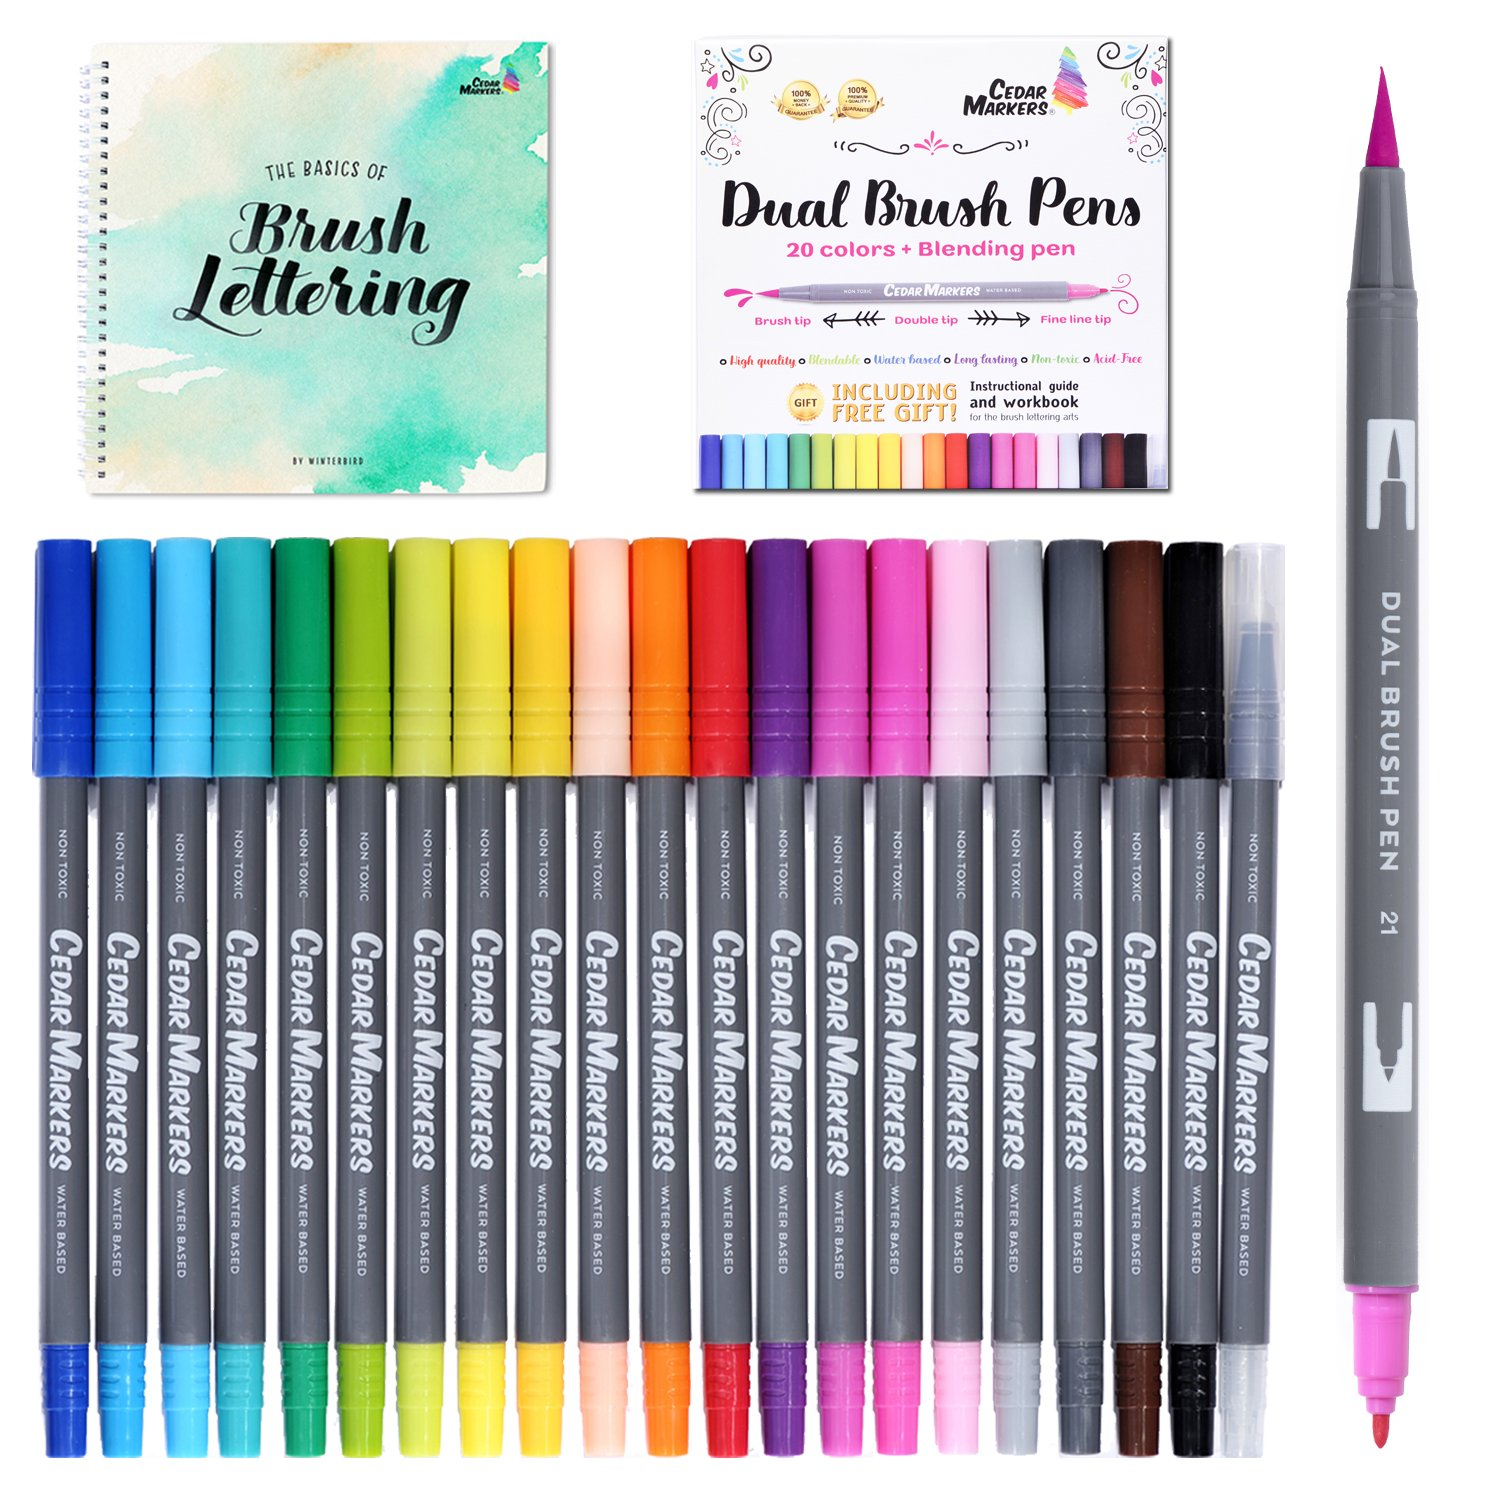 Dual Brush Pens. 21 Calligraphy Pen Set with Best Hand Lettering Guide Book. Fine Liner and Brush Tip Markers. Colored Pens, Art Pens for Adult Coloring Book and Bullet Journal. (21 XL) by Cedar Markers